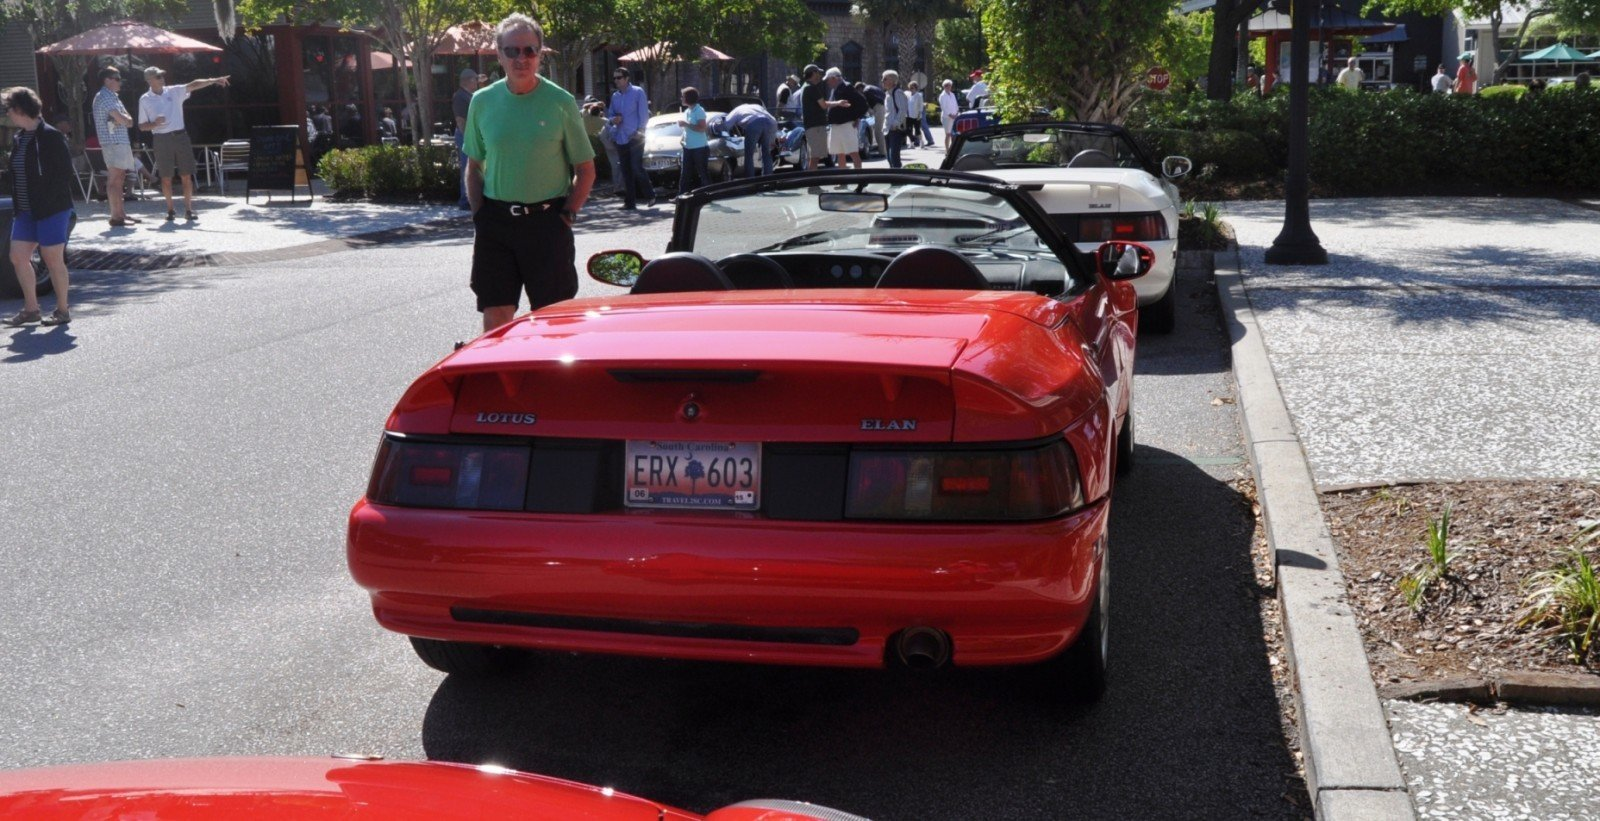 Rare Ragtops - A Pair of Lotus Elans Graced Kiawah Island, SC Cars and Coffee Today 29